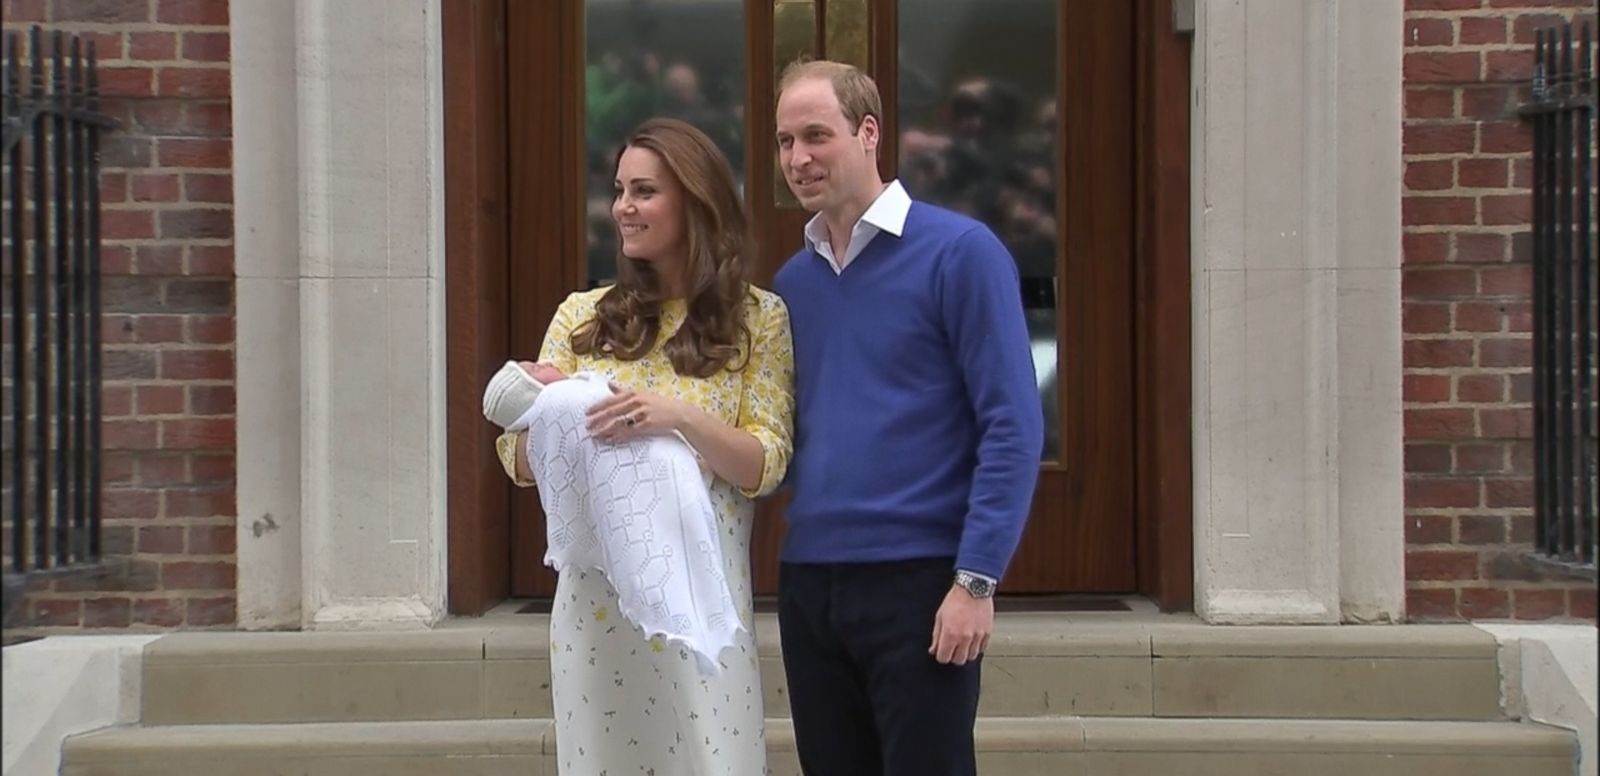 VIDEO: Prince William and Kate Middleton turned to familial names when naming their baby girl.